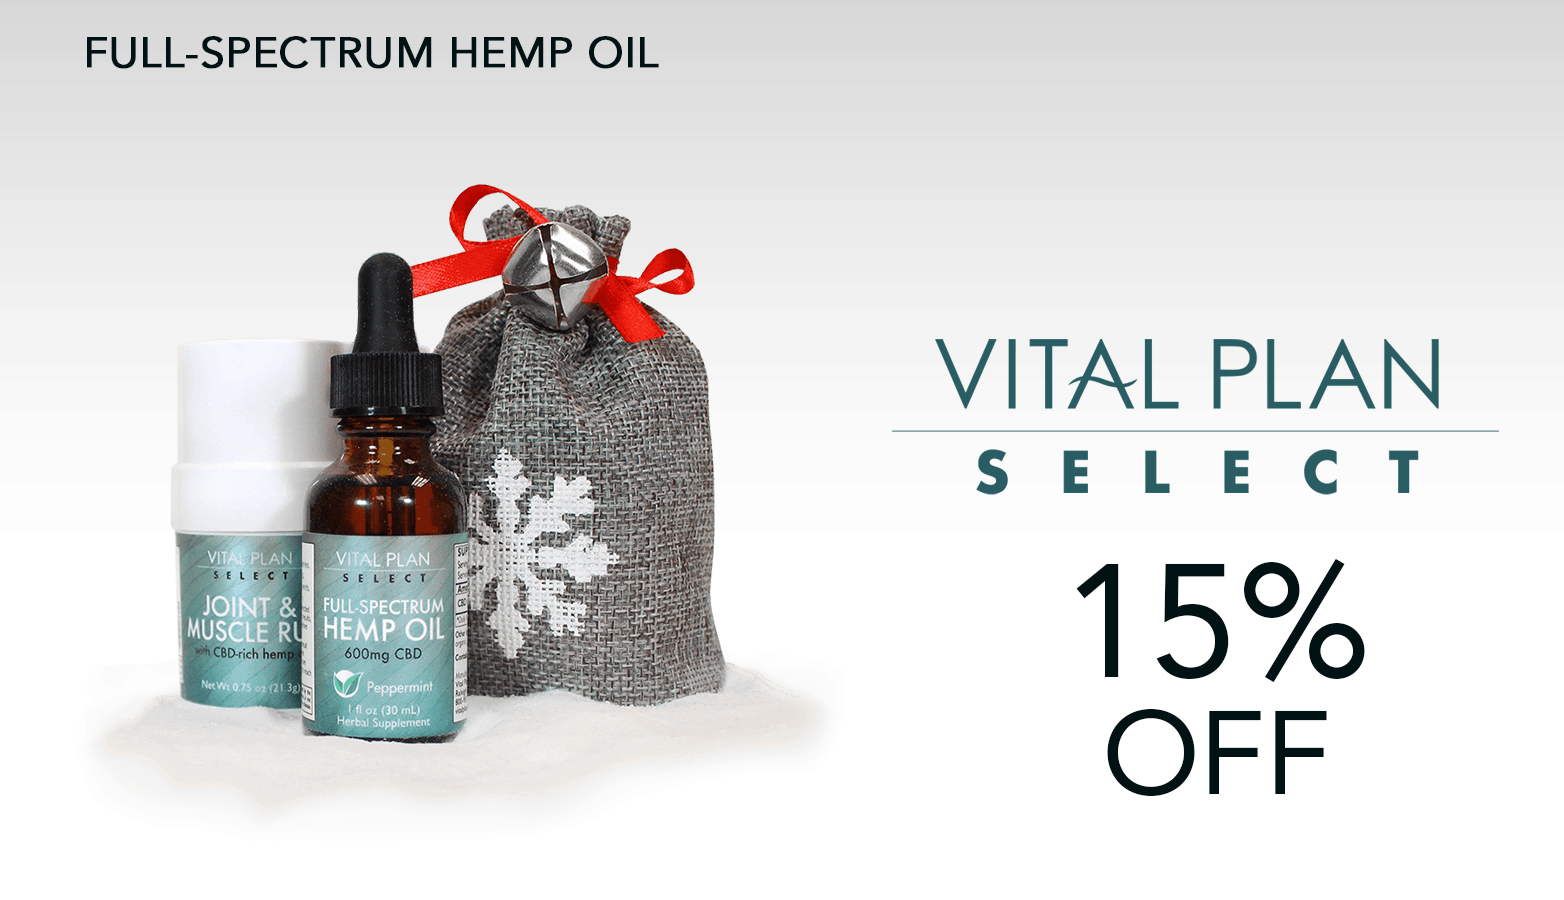 Vital Plan Select Hemp Coupon Code Website